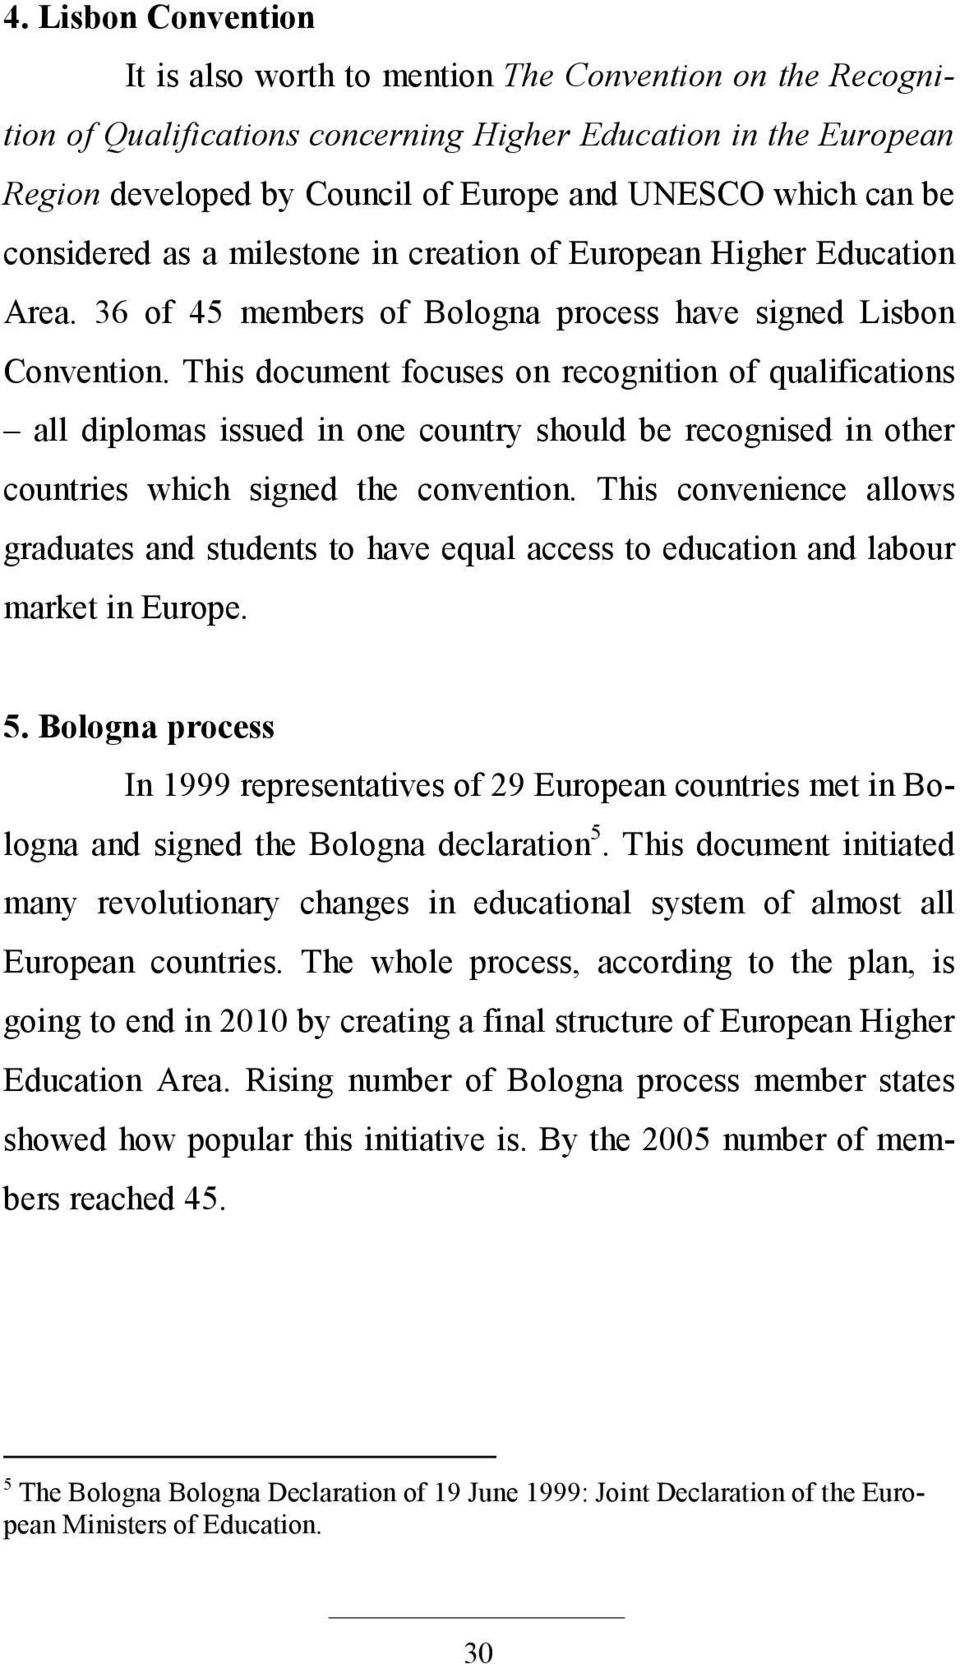 This document focuses on recognition of qualifications all diplomas issued in one country should be recognised in other countries which signed the convention.